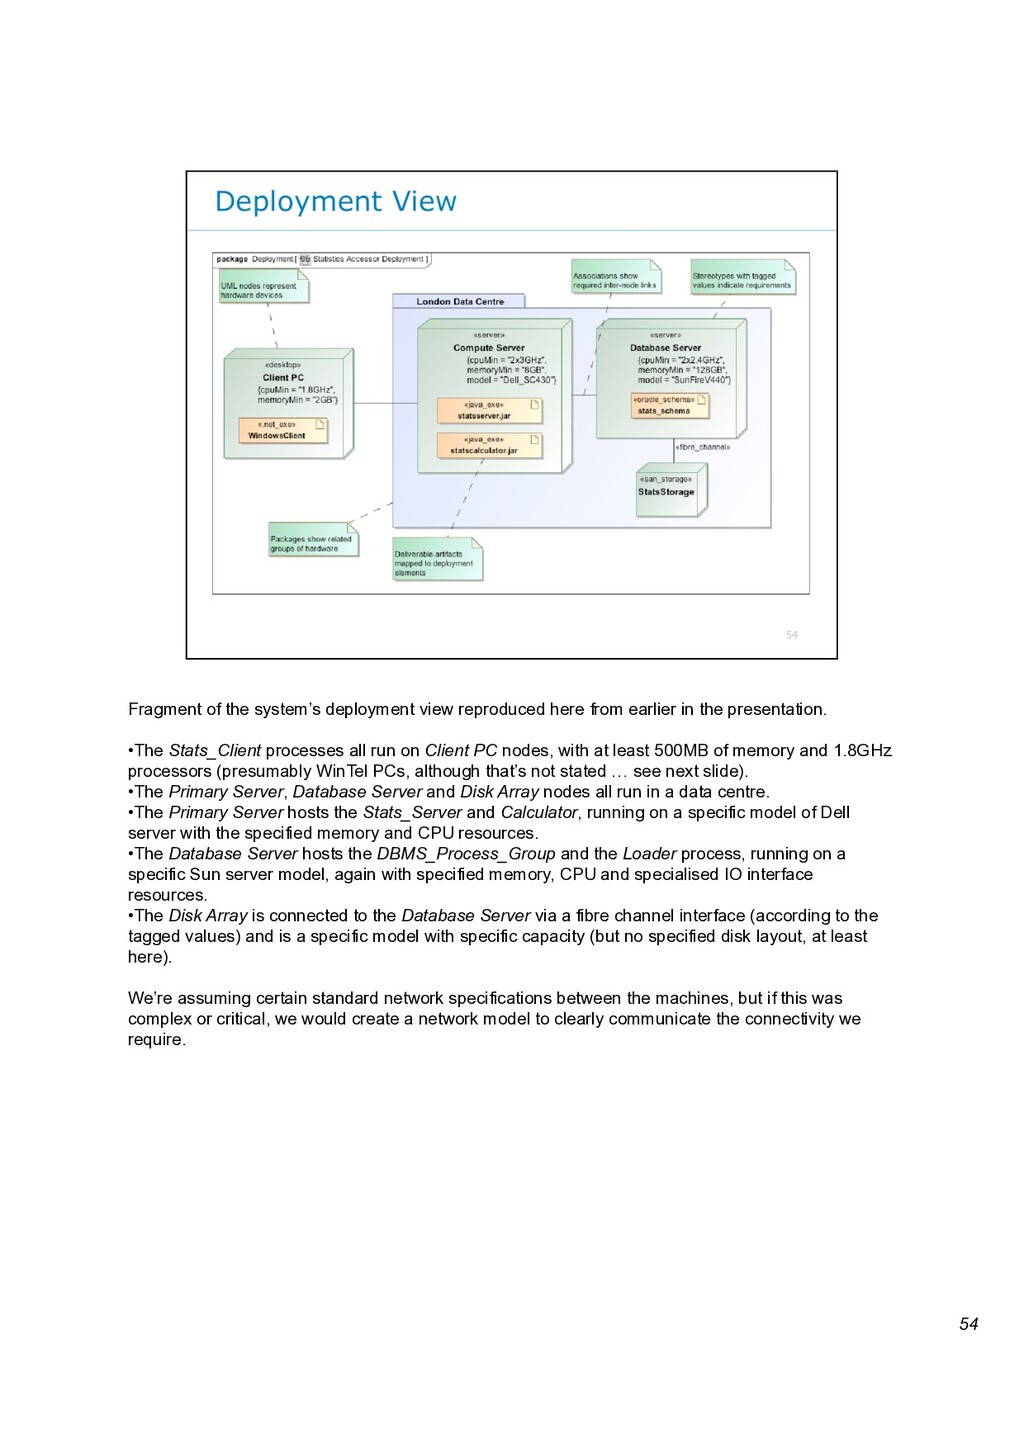 54 Fragment of the system's deployment view rep...